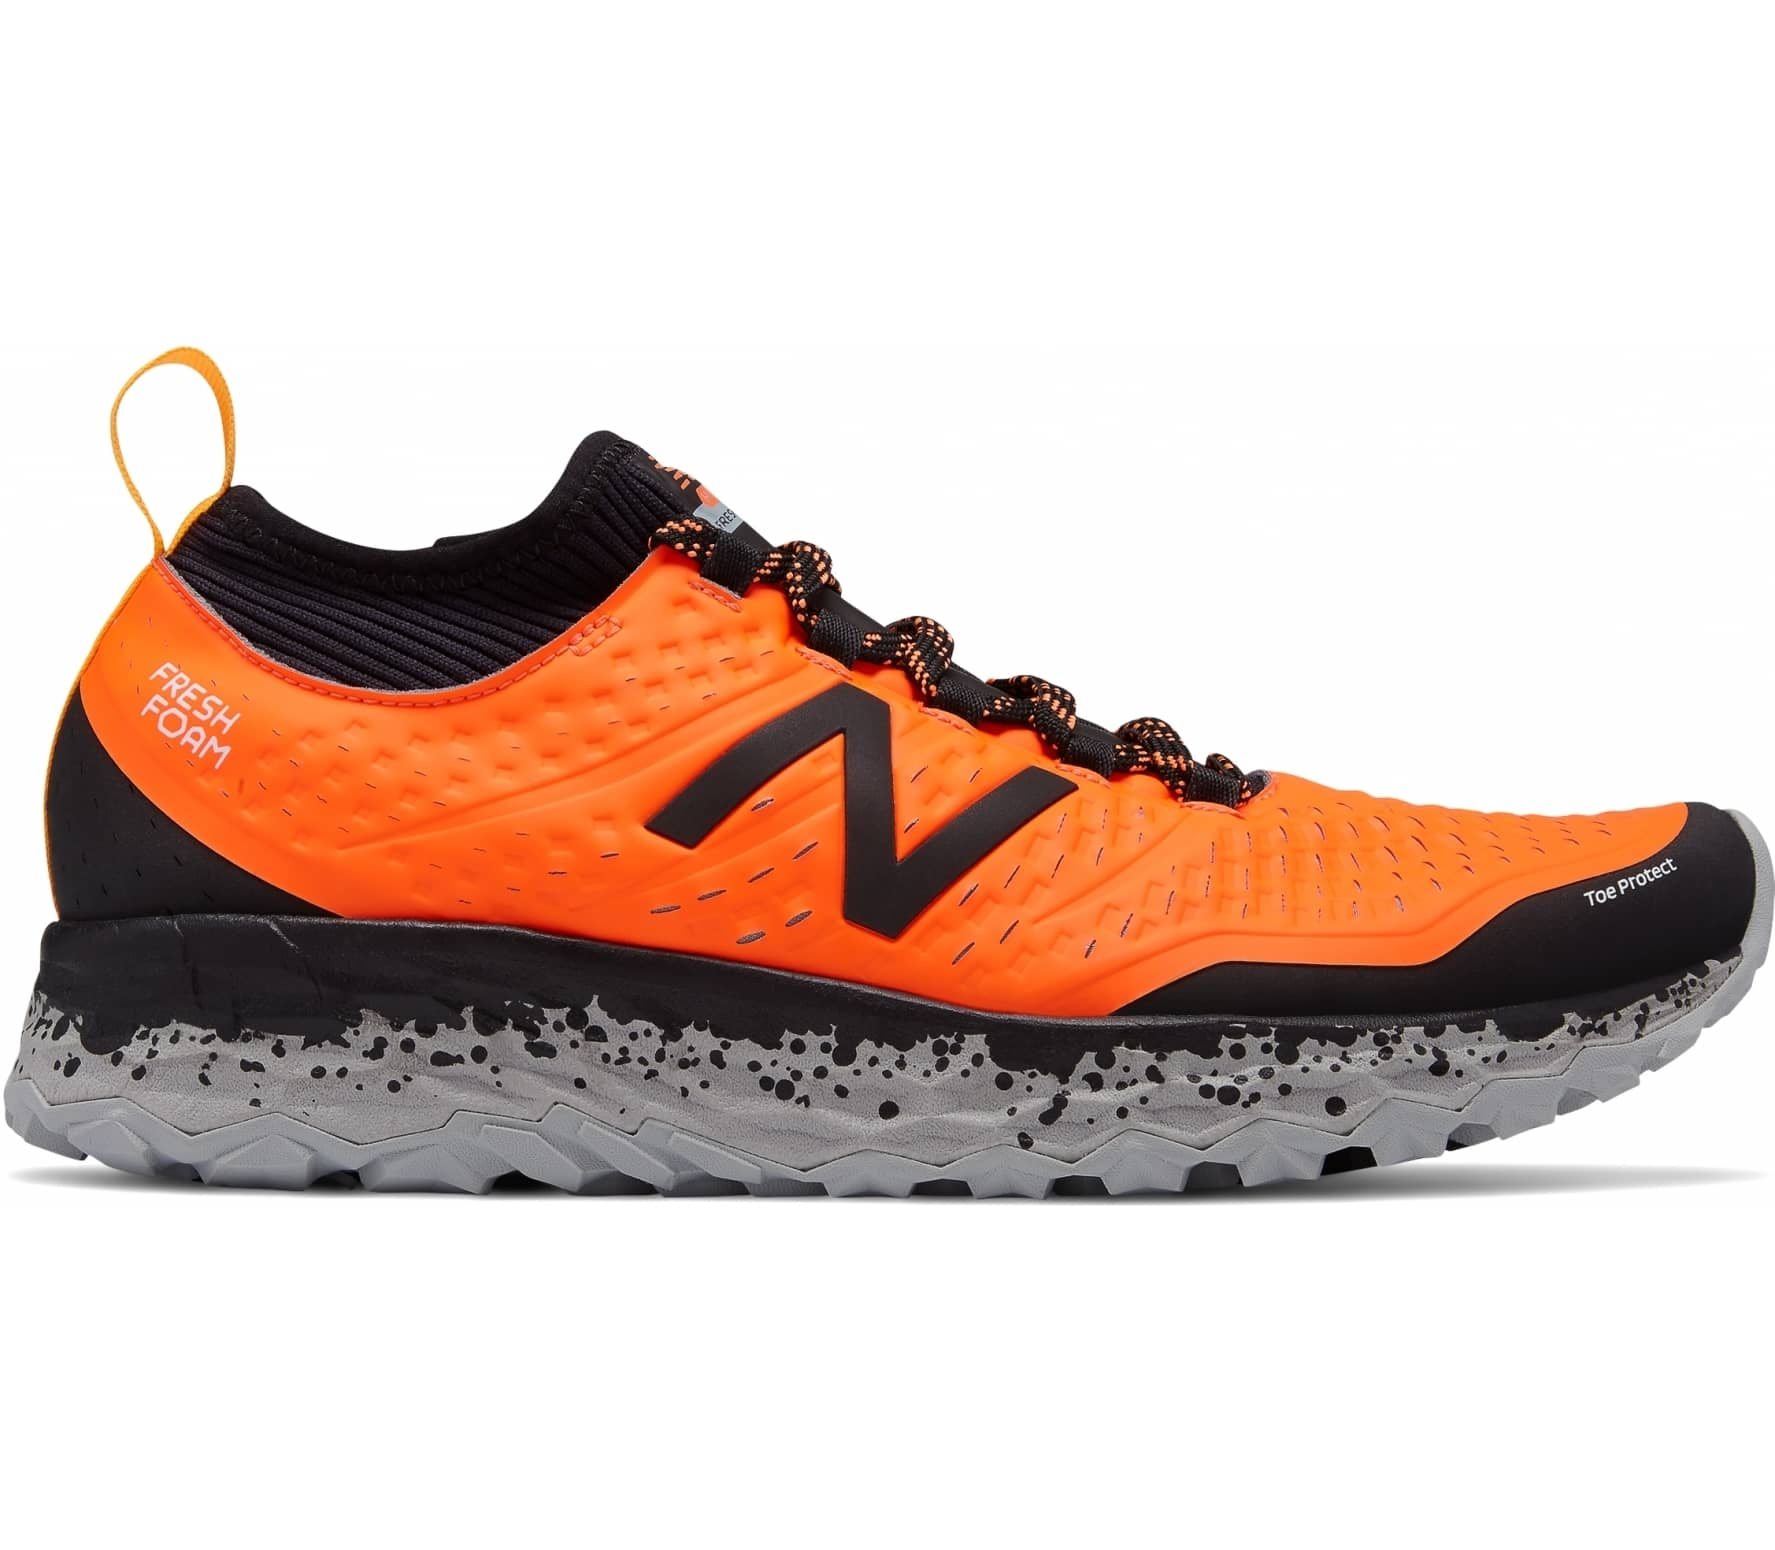 New Balance Fresh Foam M Hierro v3 men's running shoes (orangeblack)